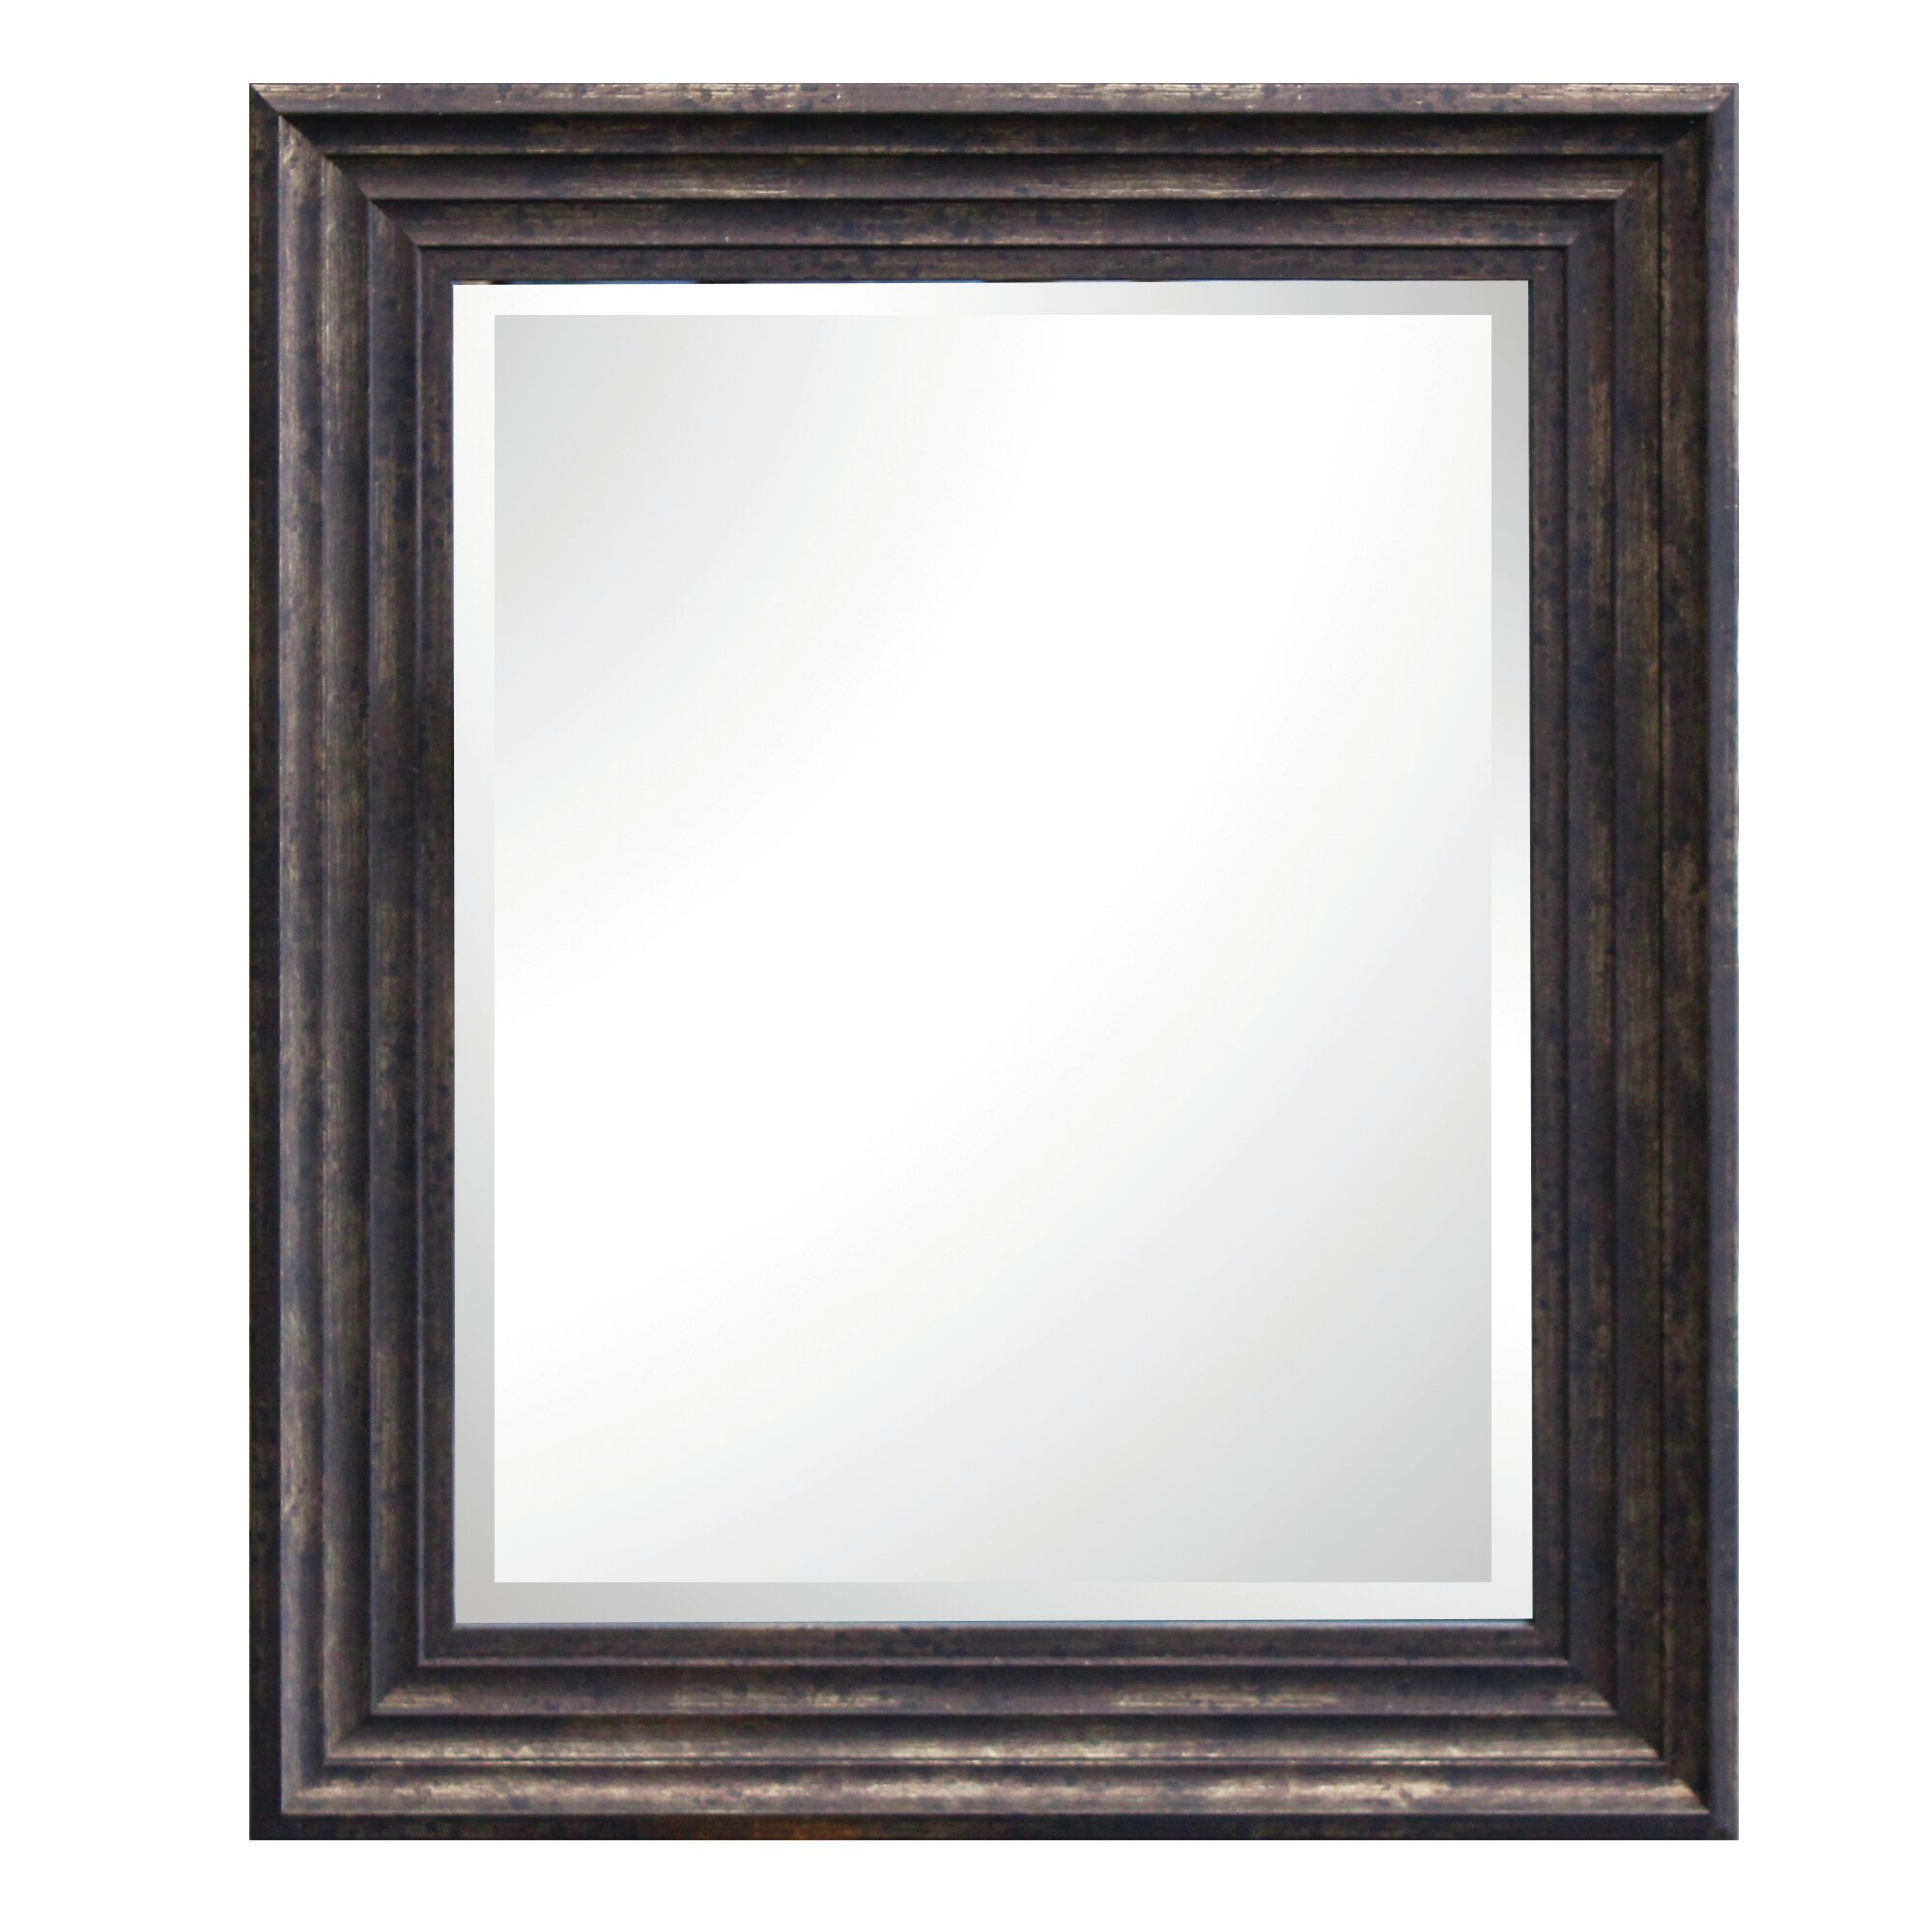 Yosemite Home Decor Framed Wall Mirror Reviews Wayfair